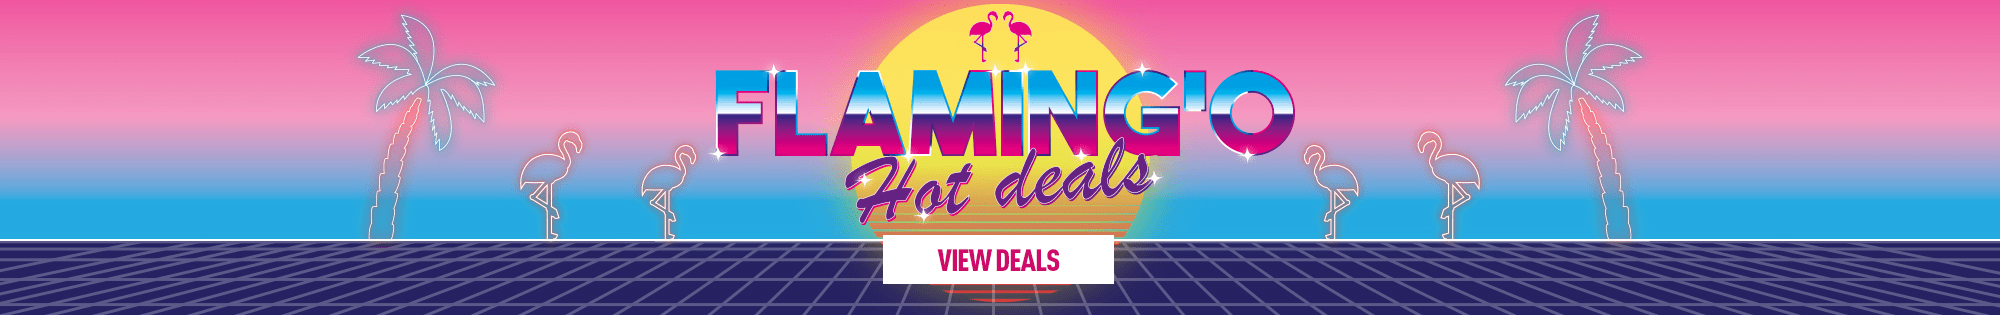 Flamingo Hot Deals - Homepage Banner